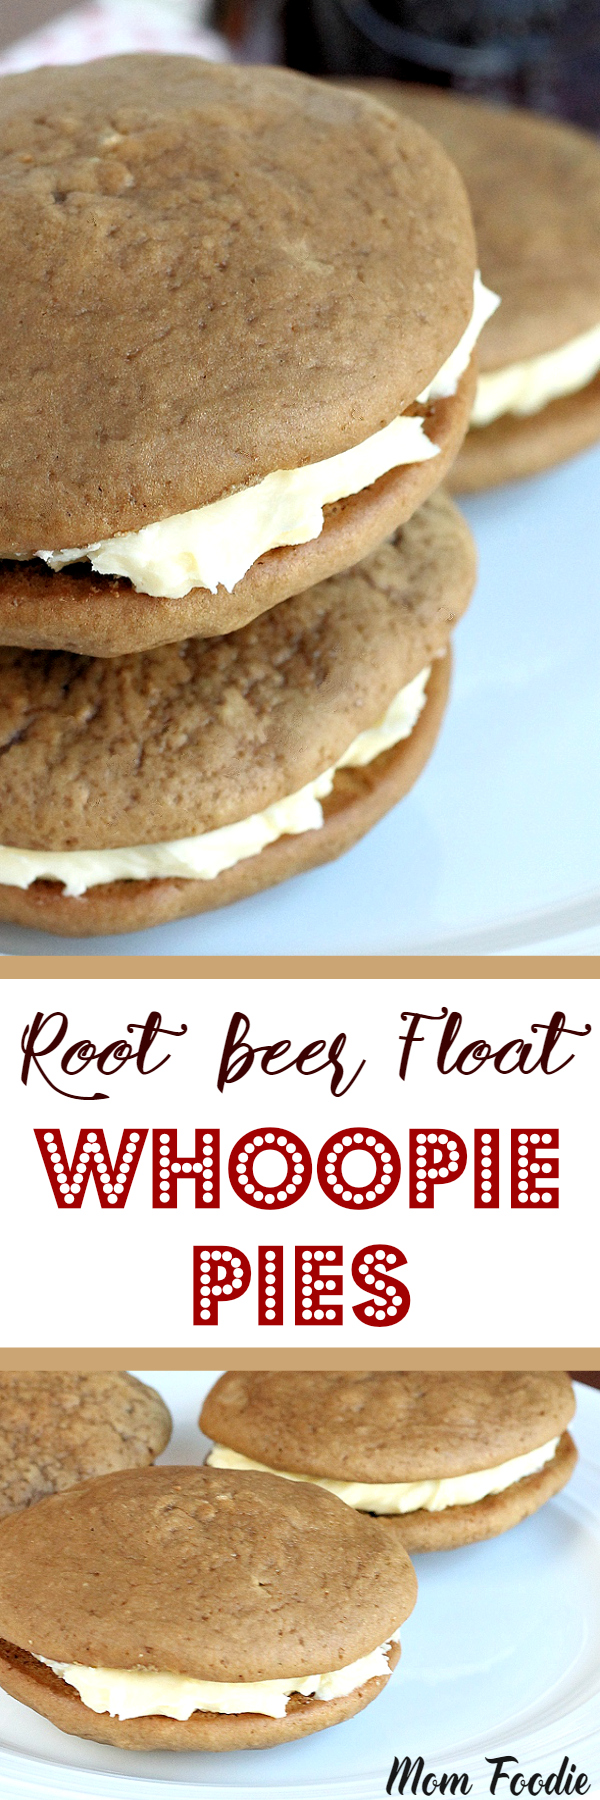 Root Beer Float Whoopie Pies